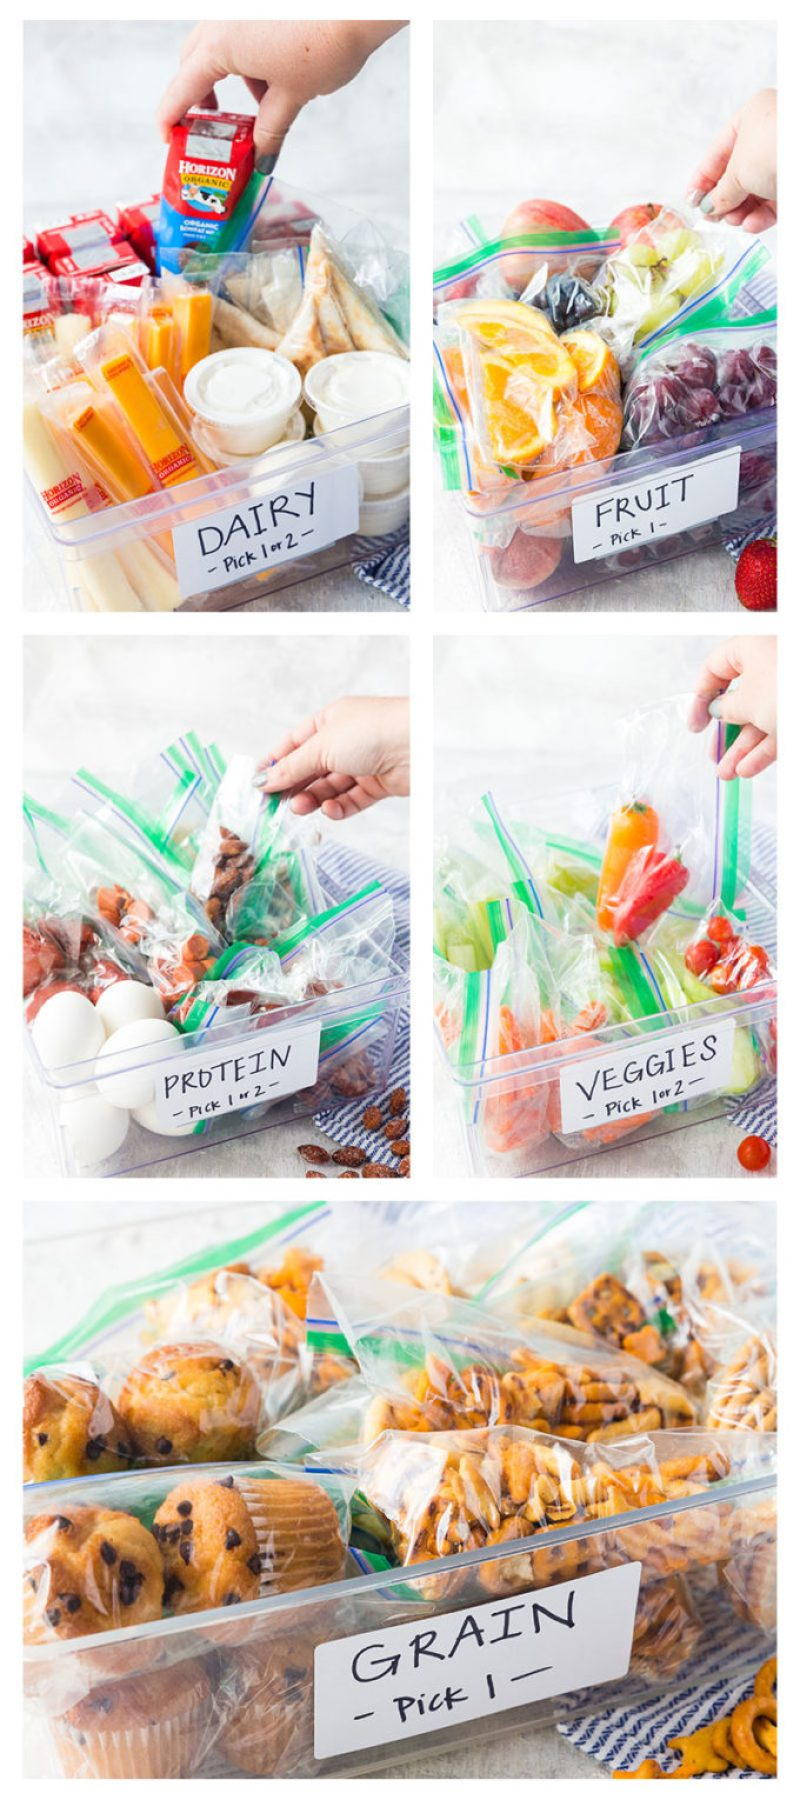 5 bins full of organic foods for kids to build their own lunches with